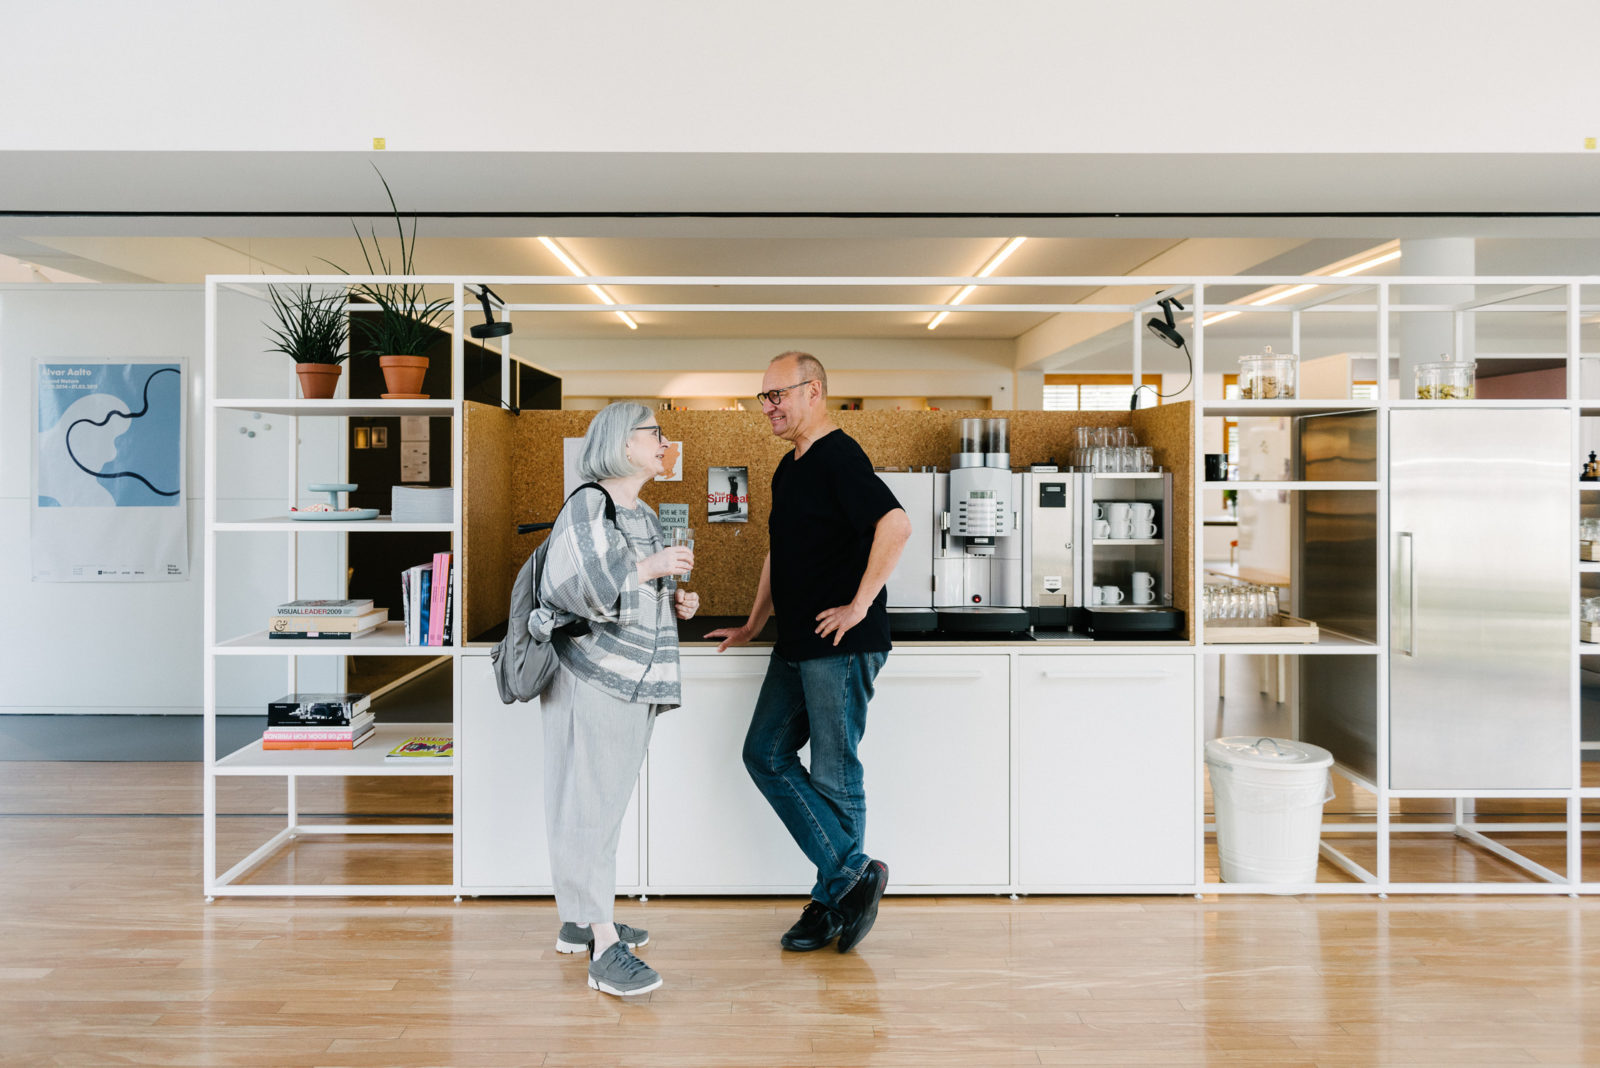 The Vitra Center Studio Office: Providing space for impromptu meetings around the coffee point. Sevil bumps into Vitra's Juergen Durrbaum